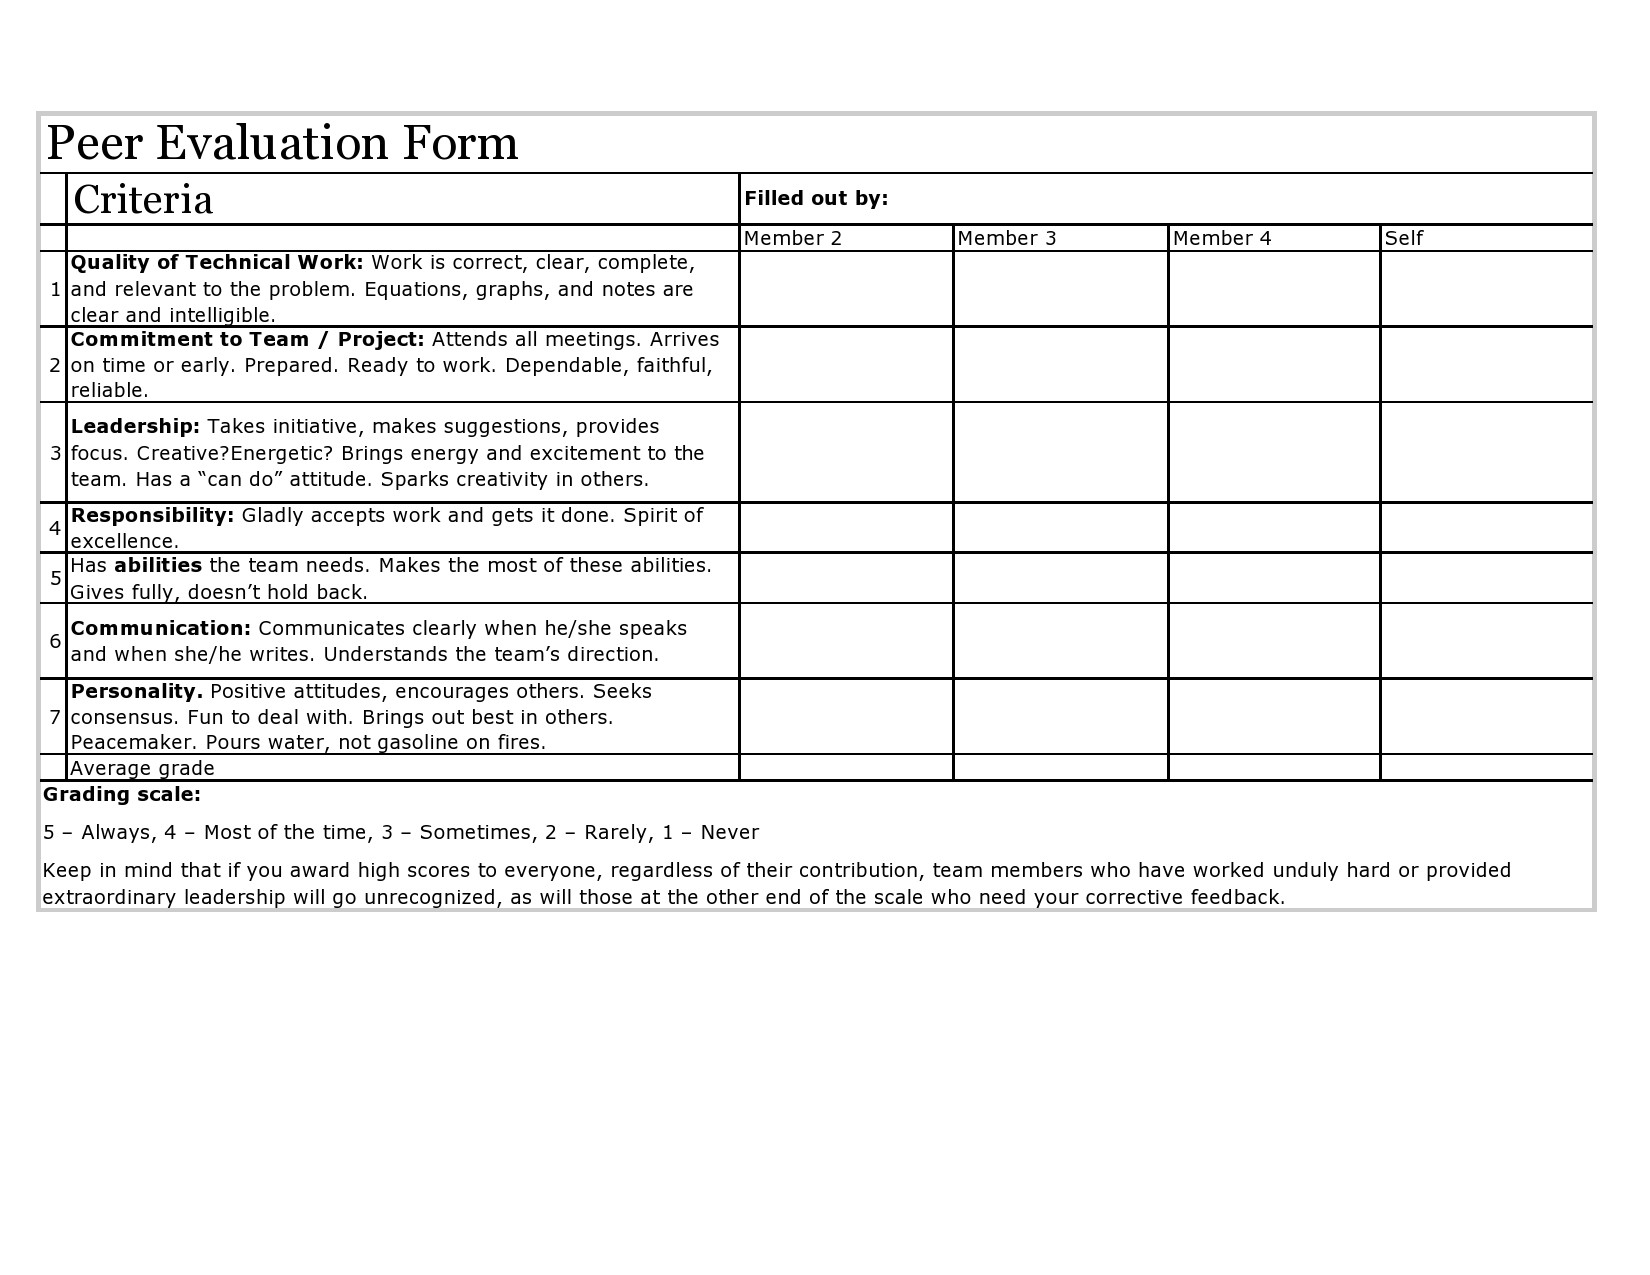 Free peer evaluation form 06